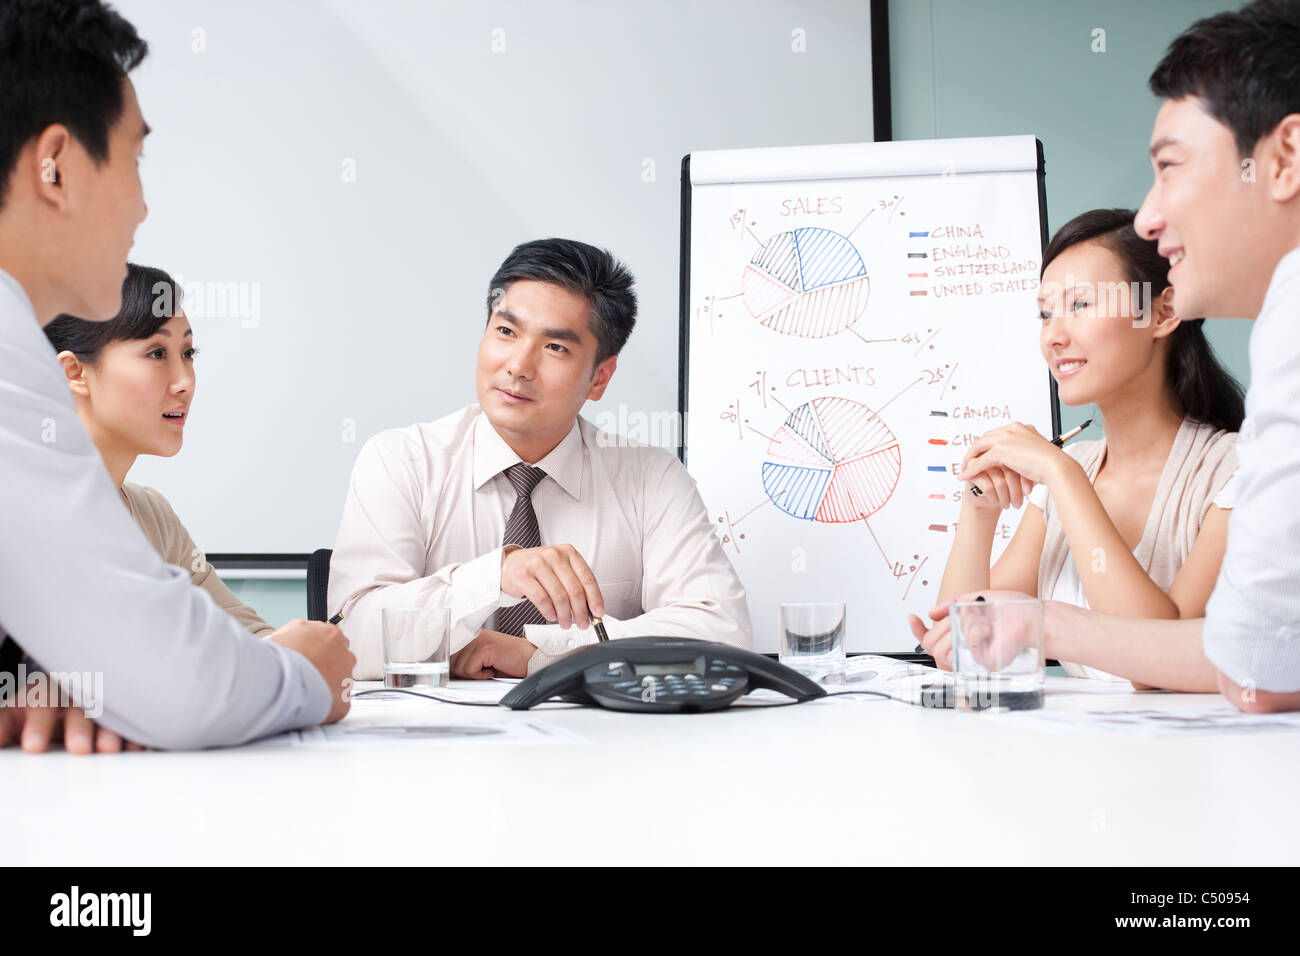 Business Executive Listening to Businessman's Question - Stock Image